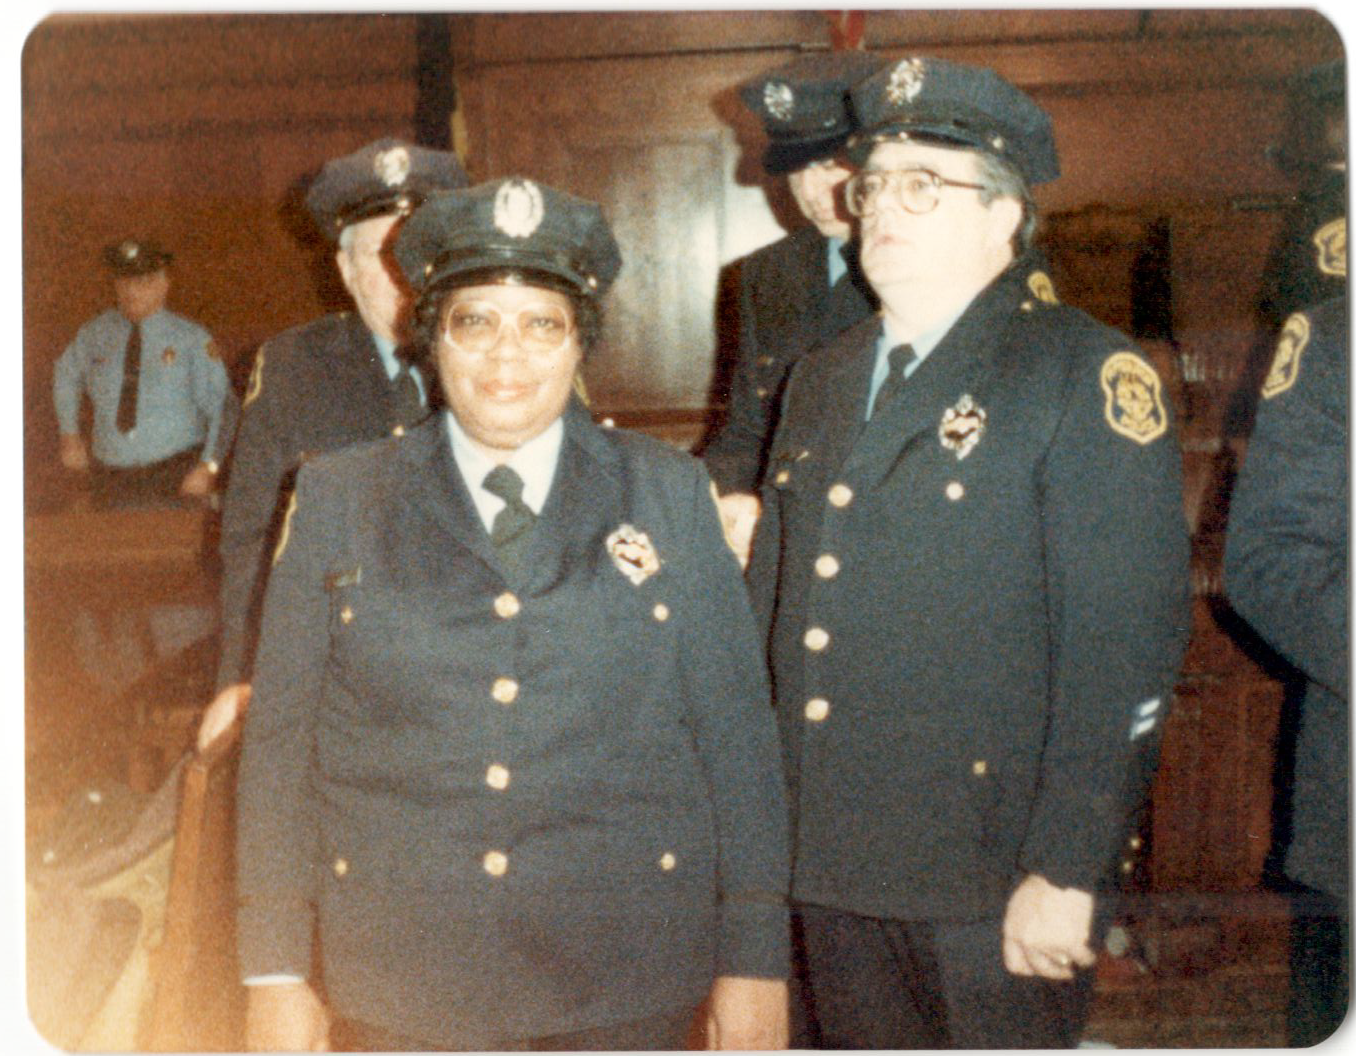 Gwen Elliott was among the first class of minority officers hired as a result of the 1975 court order that said the Pittsburgh police had to hire one black woman, one black man and one white woman for every white man it hired. (Photo courtesy of Kathi Elliott)